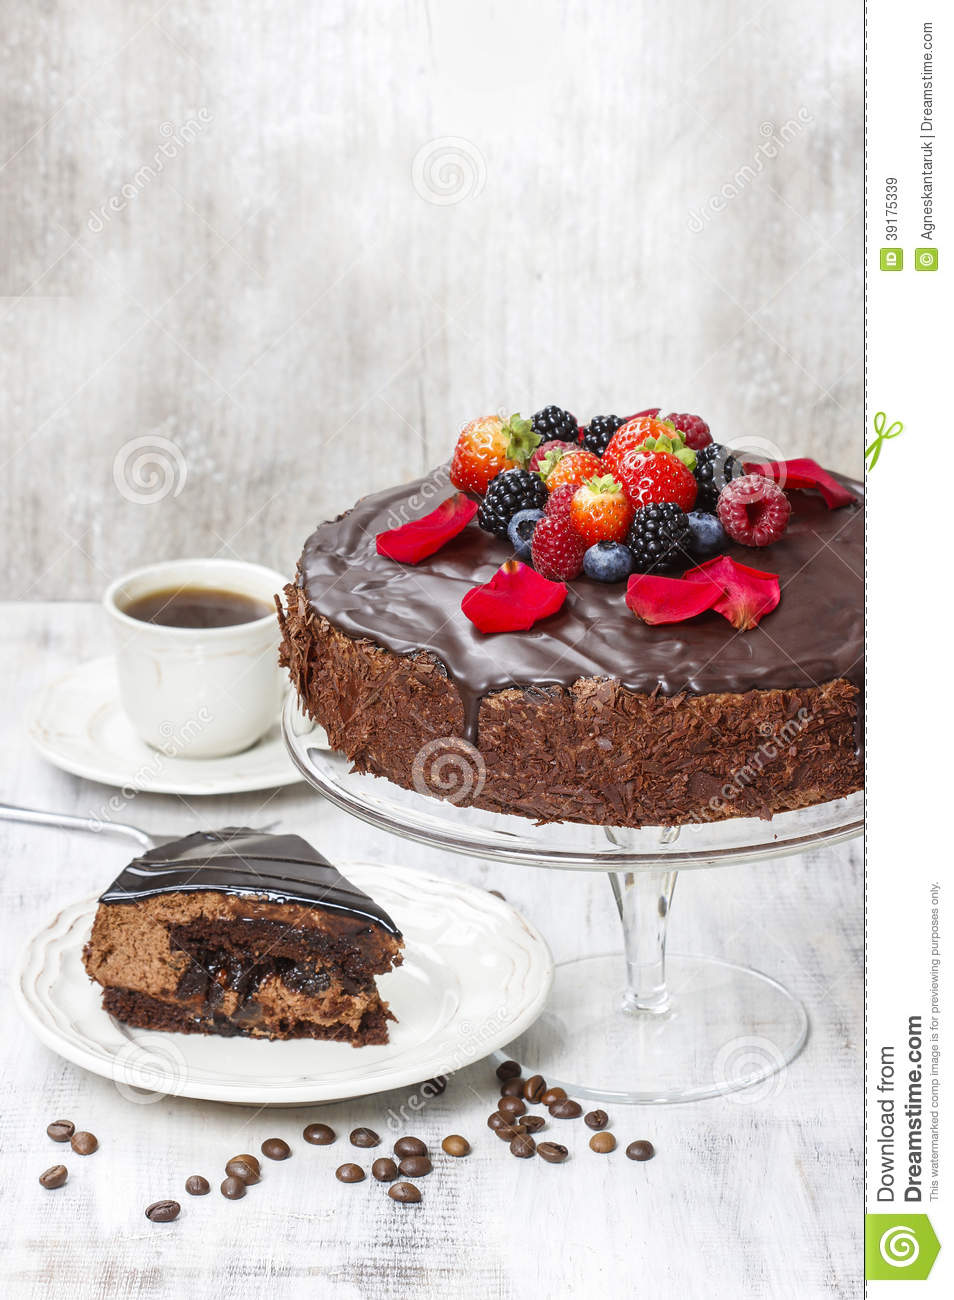 Chocolate Cake With Strawberries. Birthday Party Stock Photo - Image ...